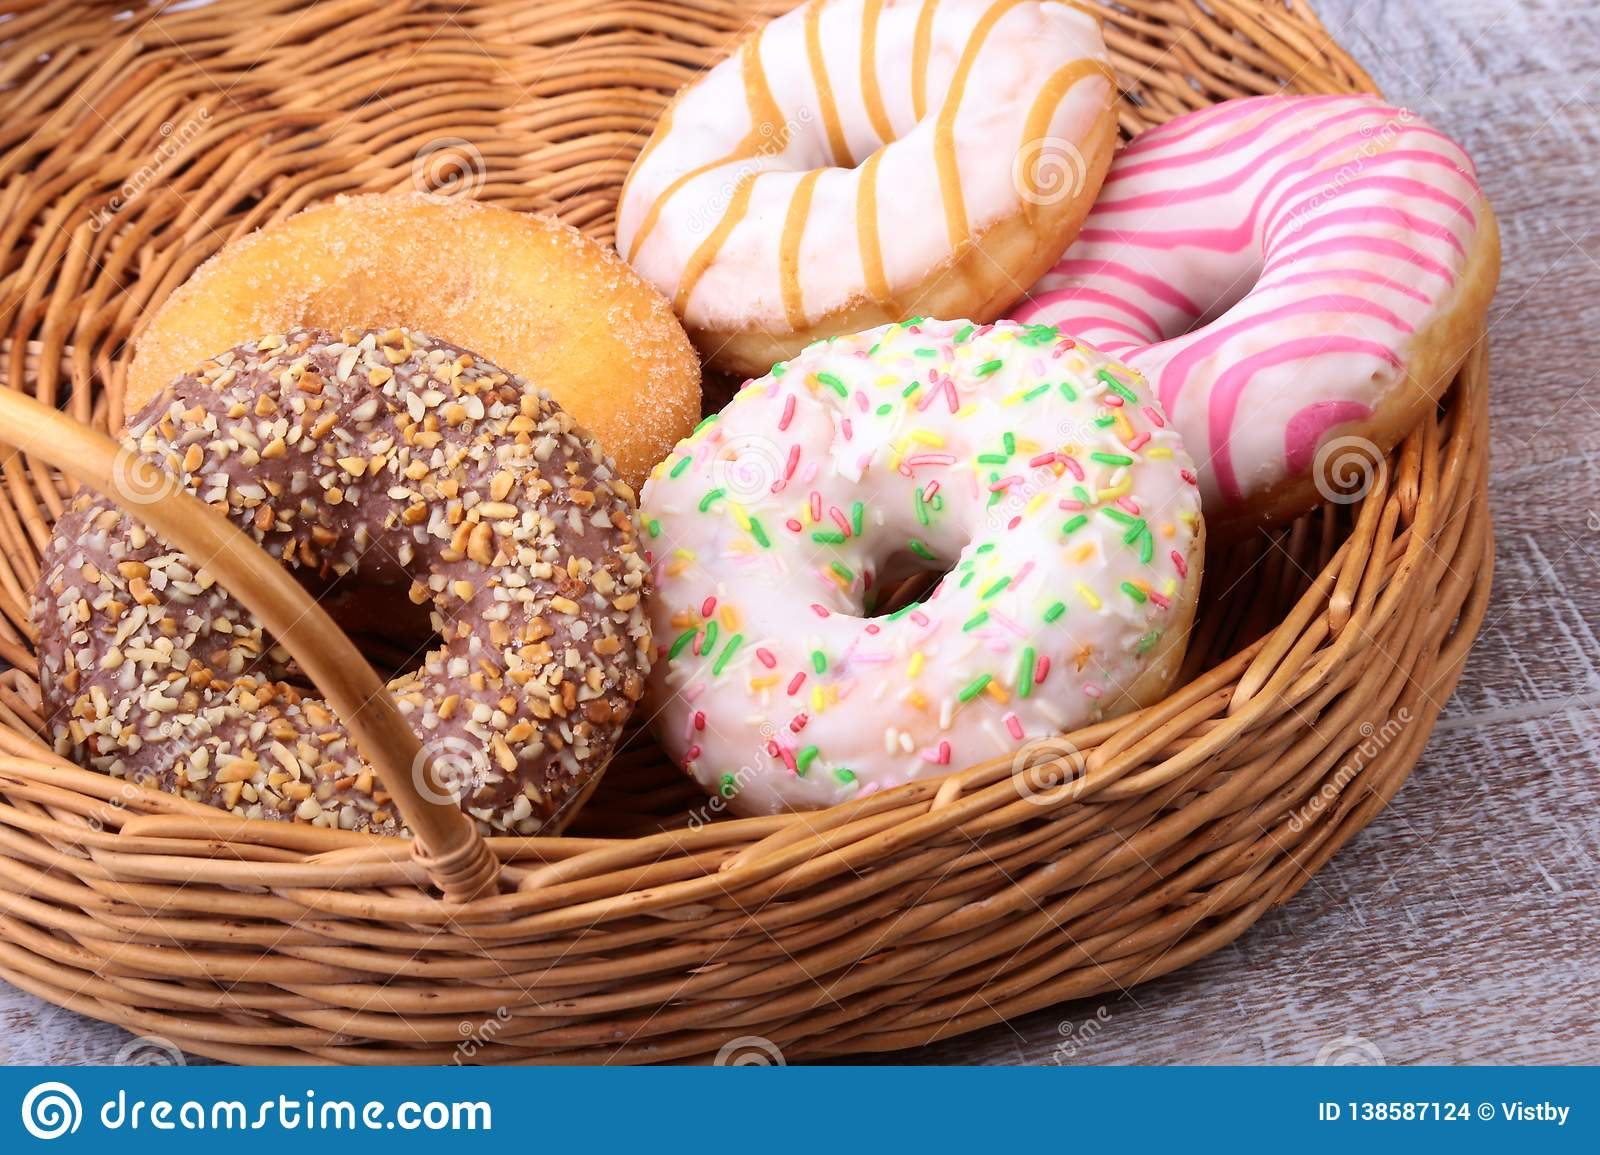 Wicker basket with assorted delicious homemade doughnuts in the glaze, colorful sprinkles and nuts .